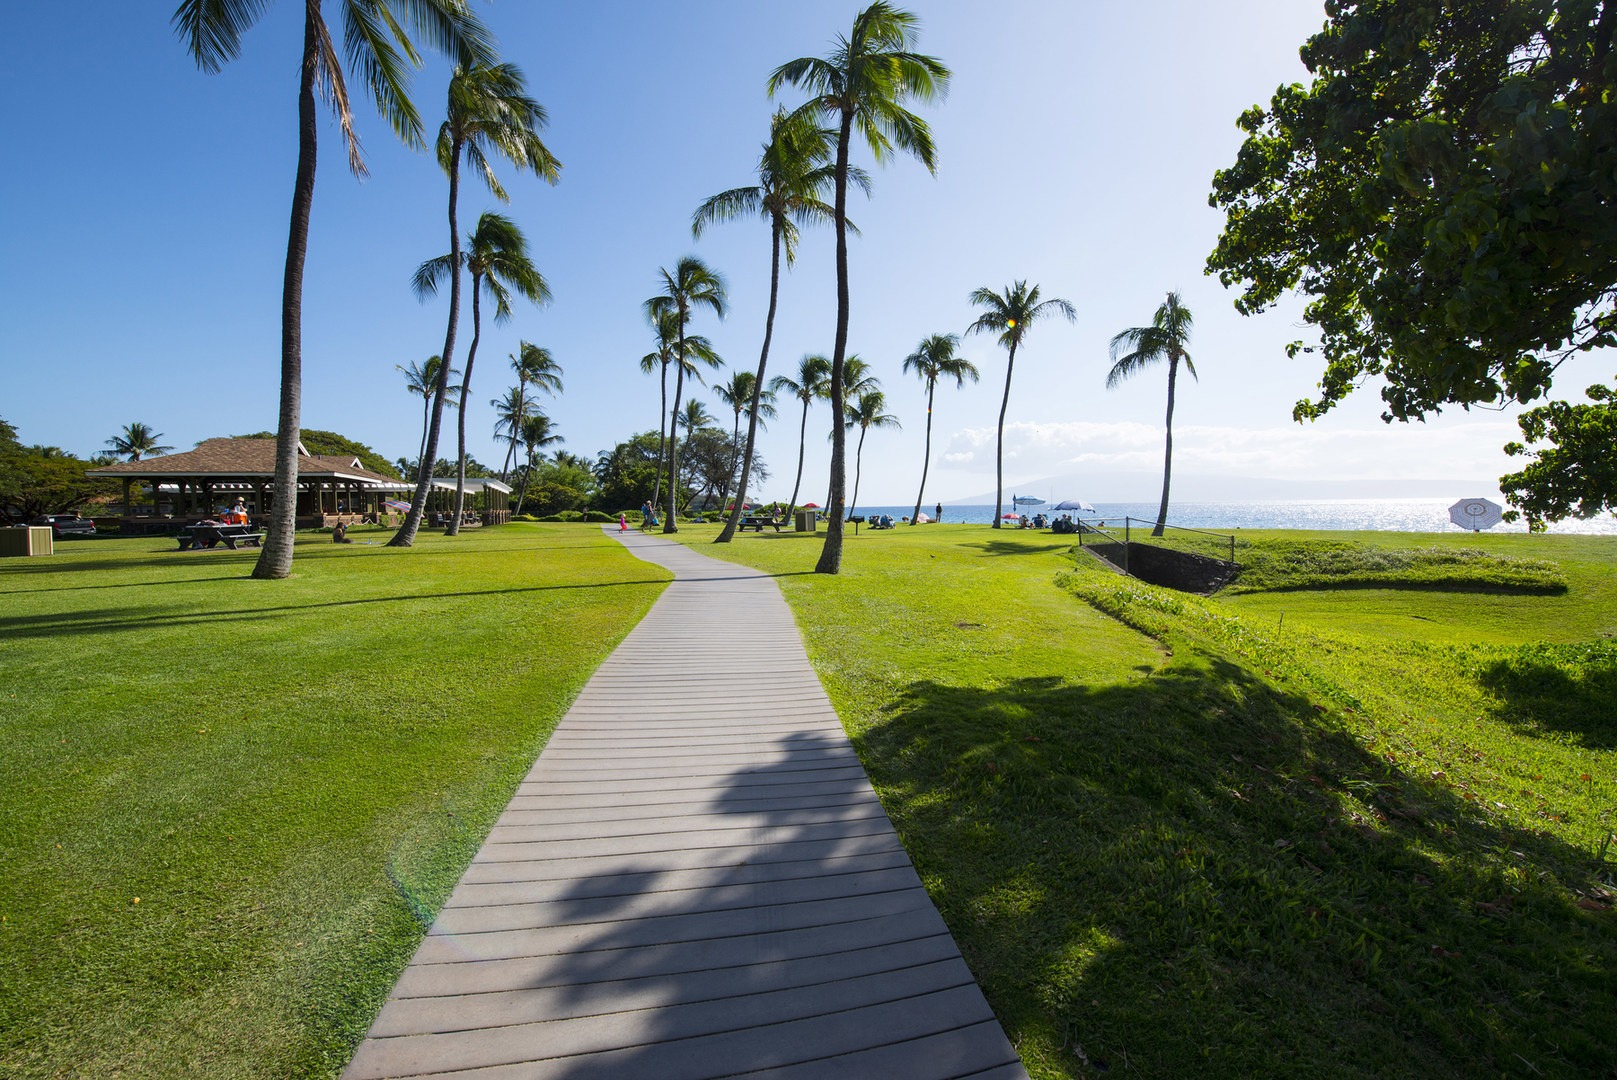 The Ka Anapali Beachwalk At Kahekili Beach Park Airport